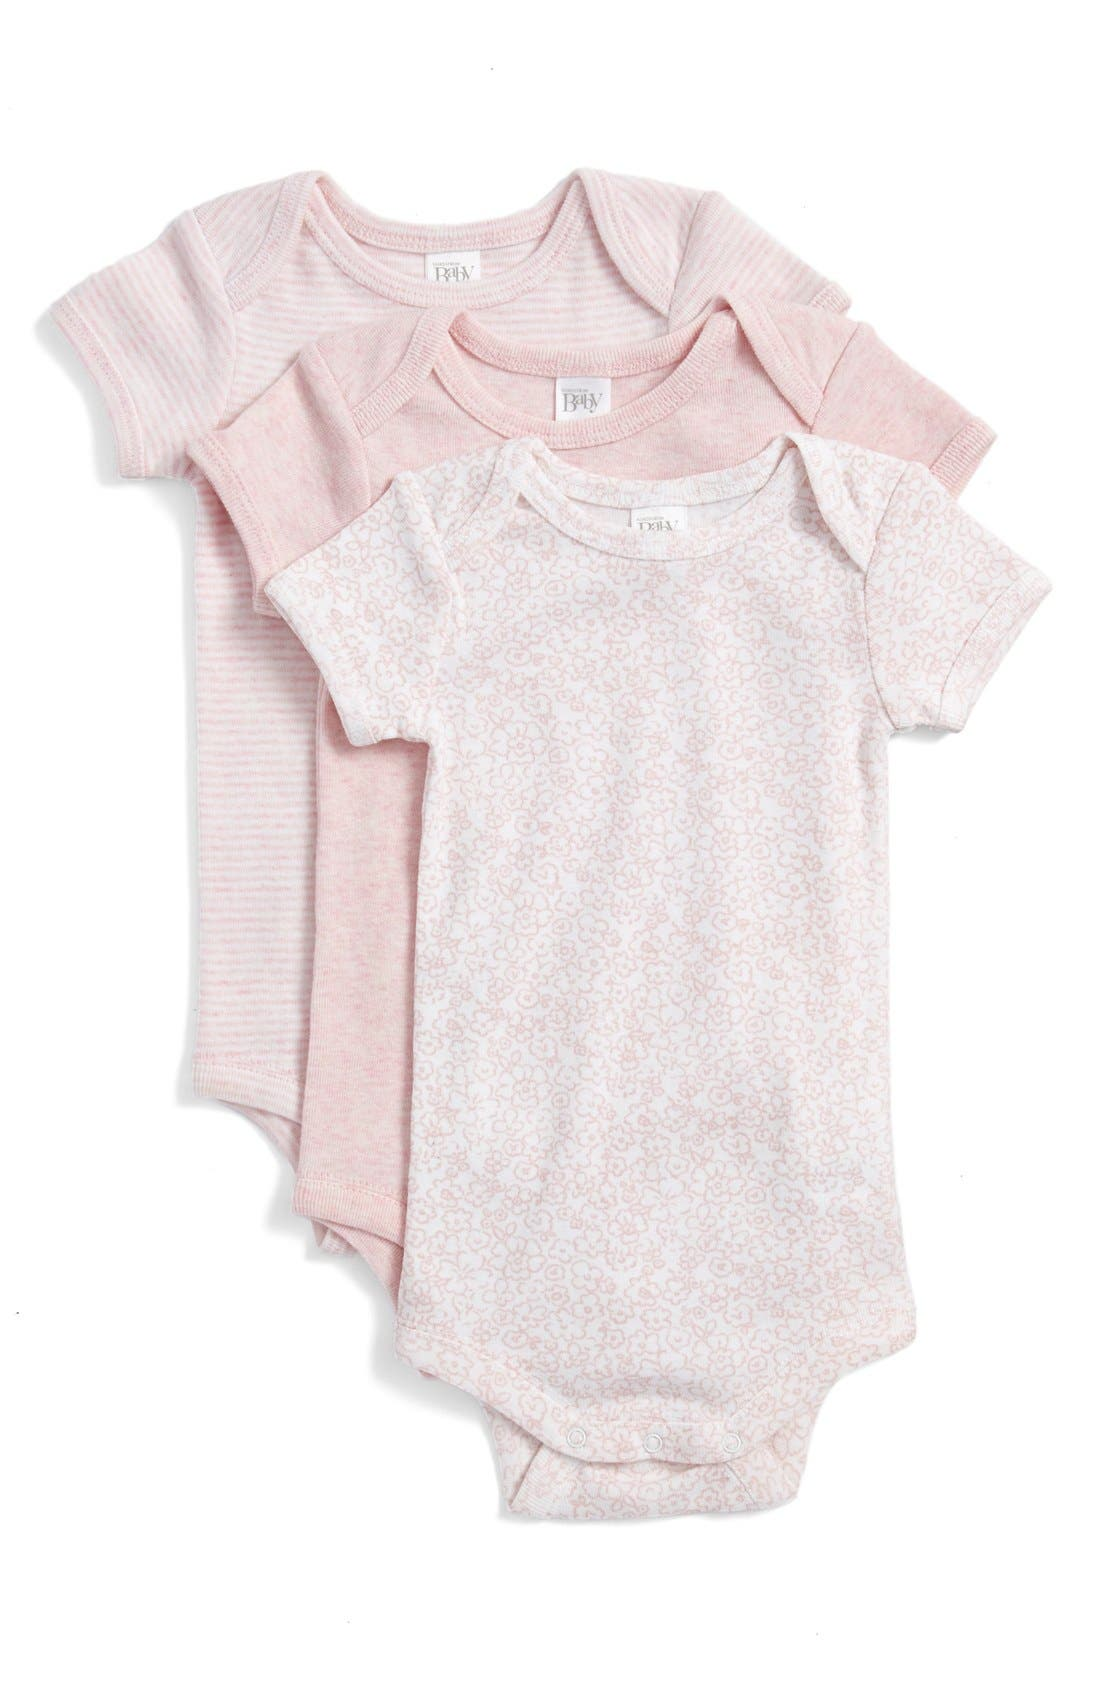 NORDSTROM BABY, Short Sleeve Cotton Bodysuits, Main thumbnail 1, color, PINK BABY PACK